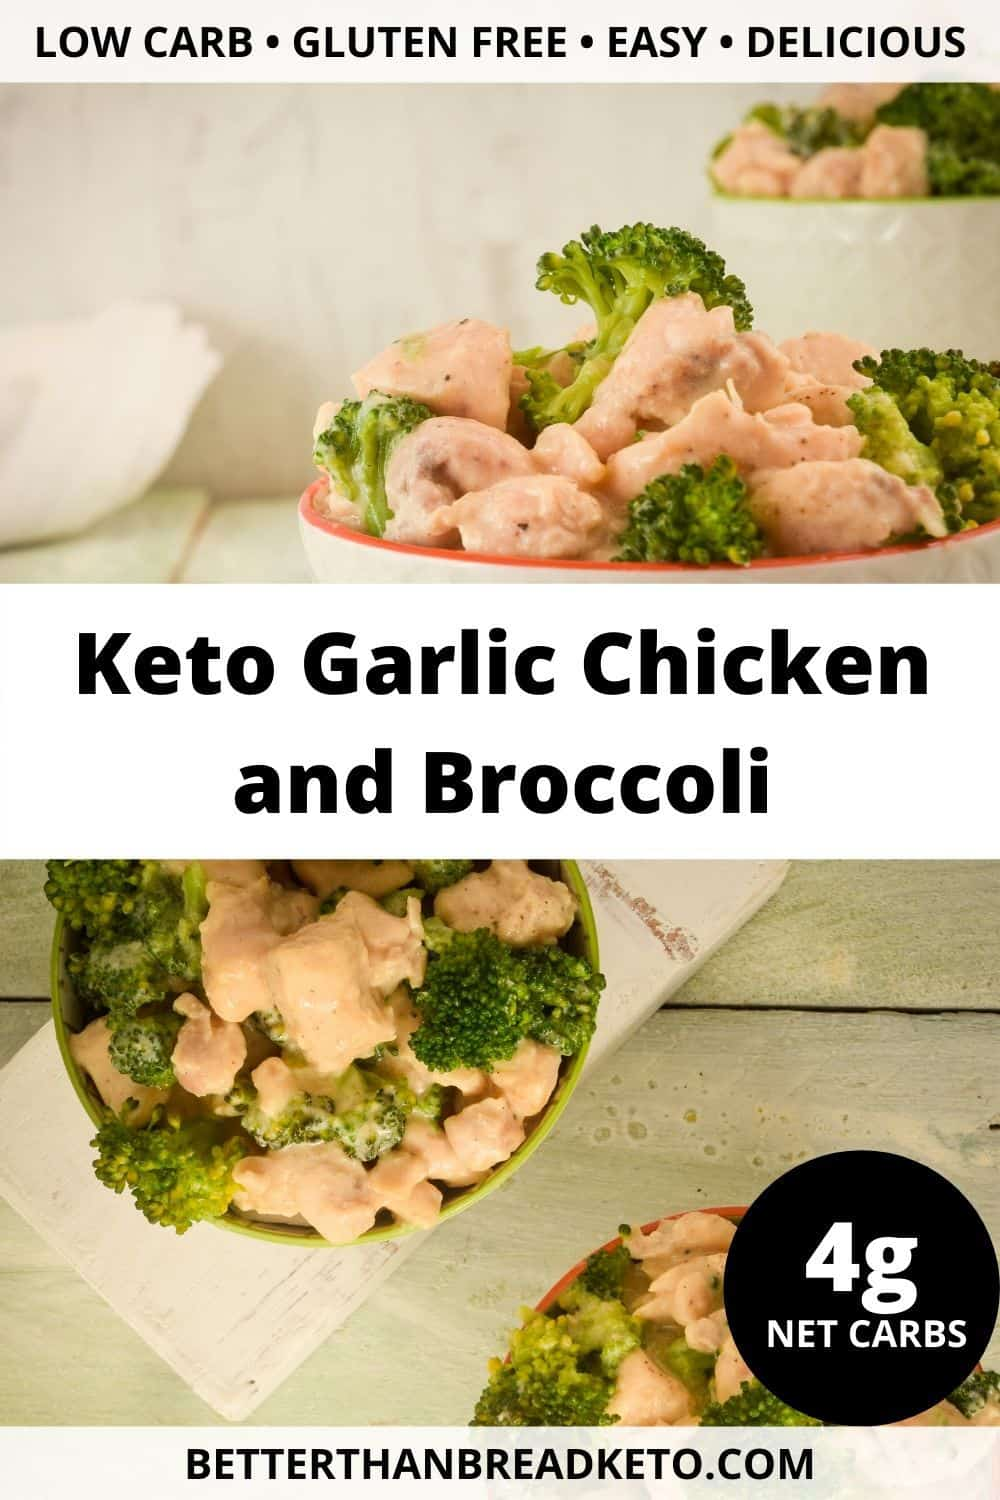 Keto Garlic Chicken and Broccoli